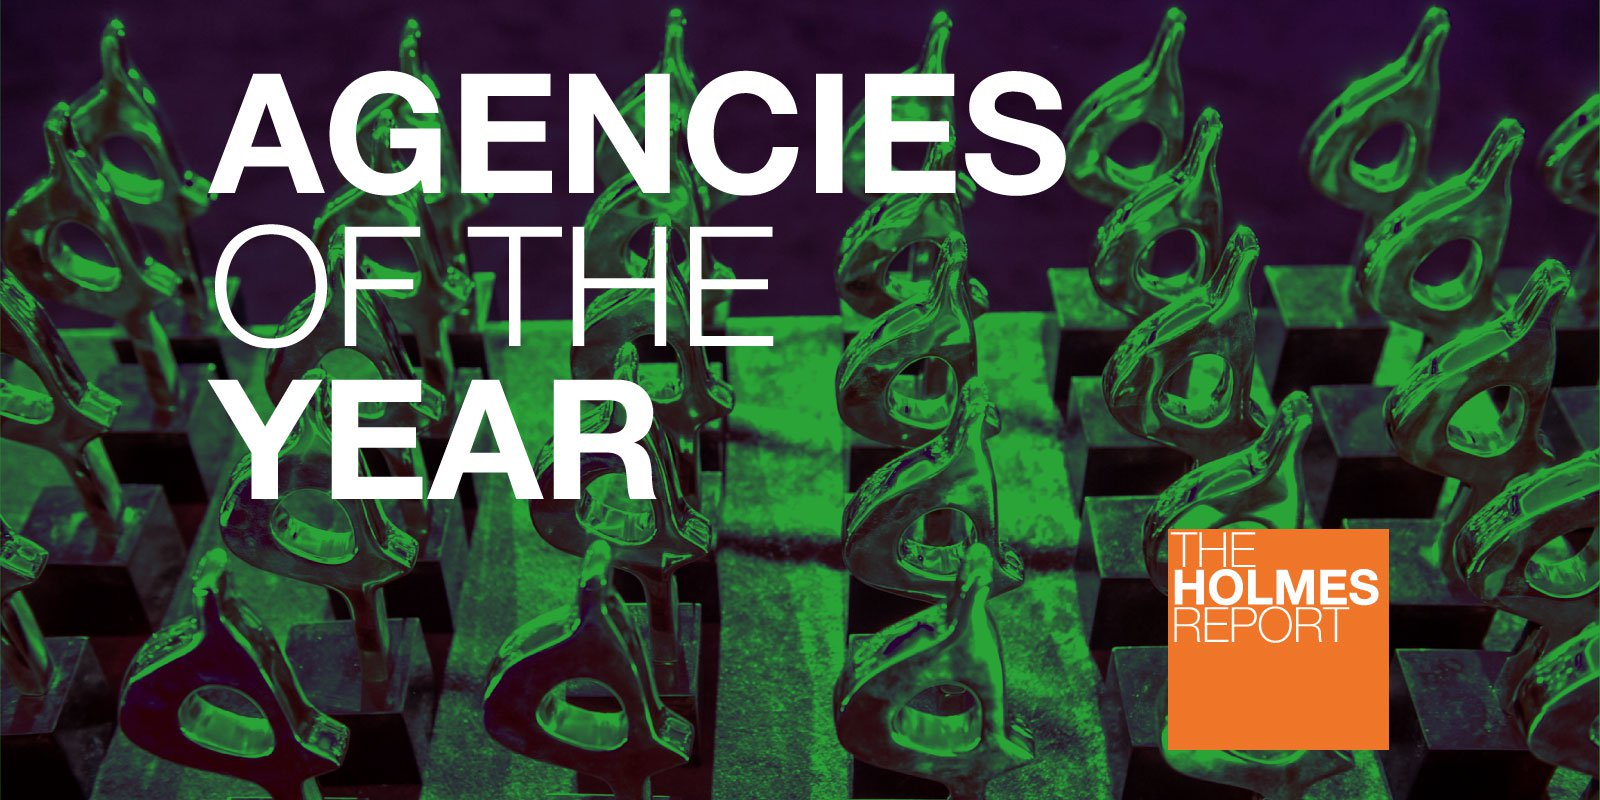 Holmes Report agencies of the year banner